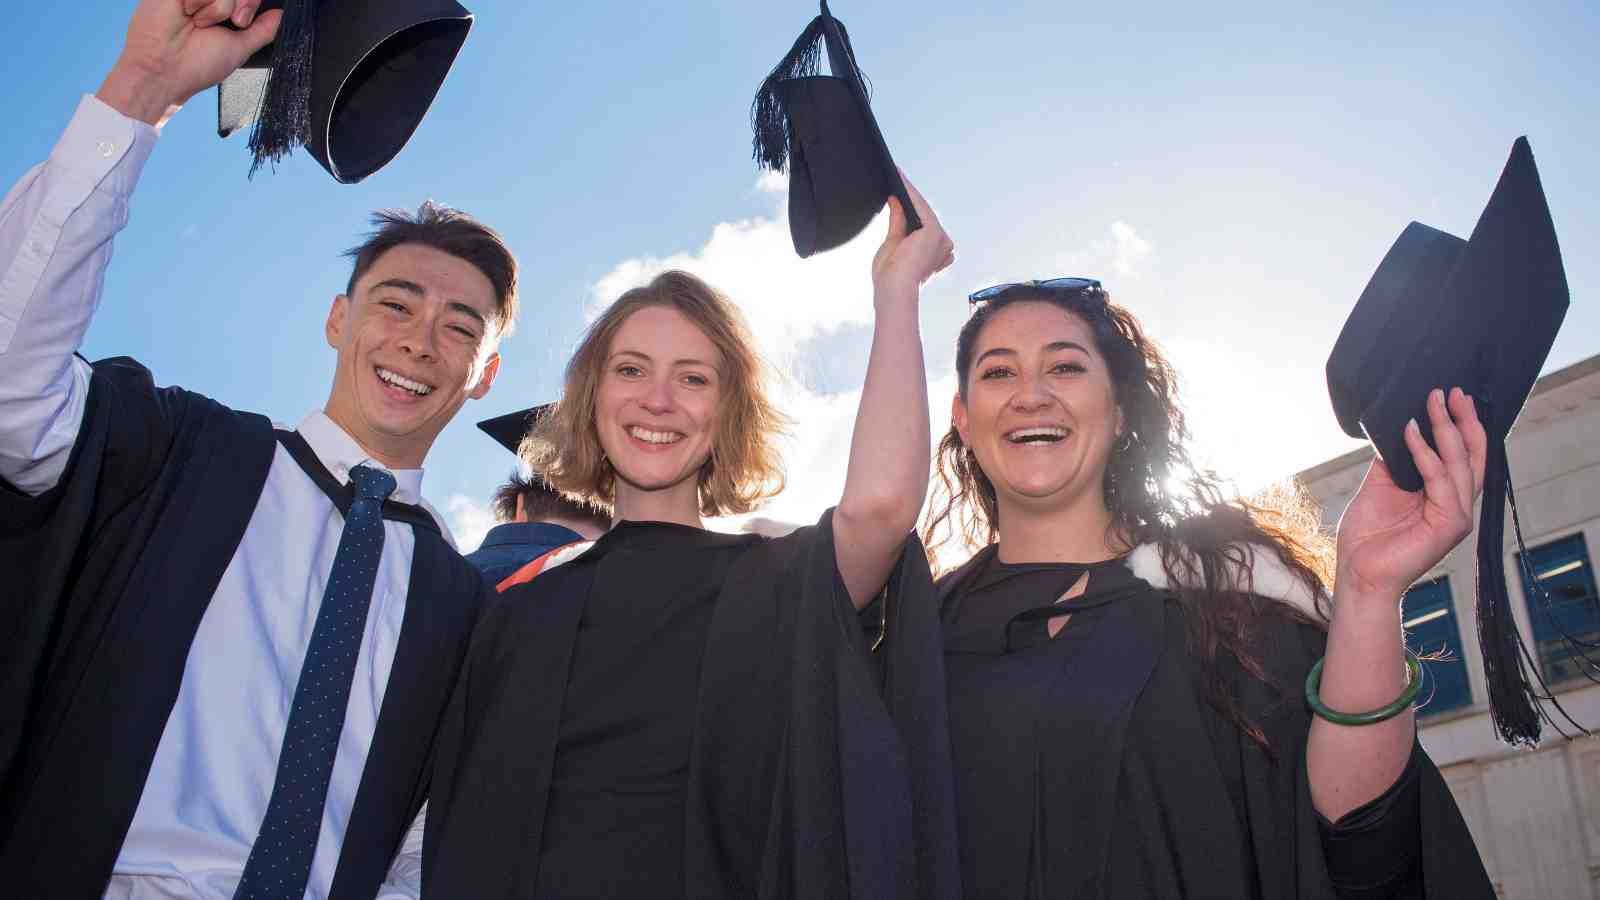 Three students raising their graduation hats in celebration at the May graduation ceremonies